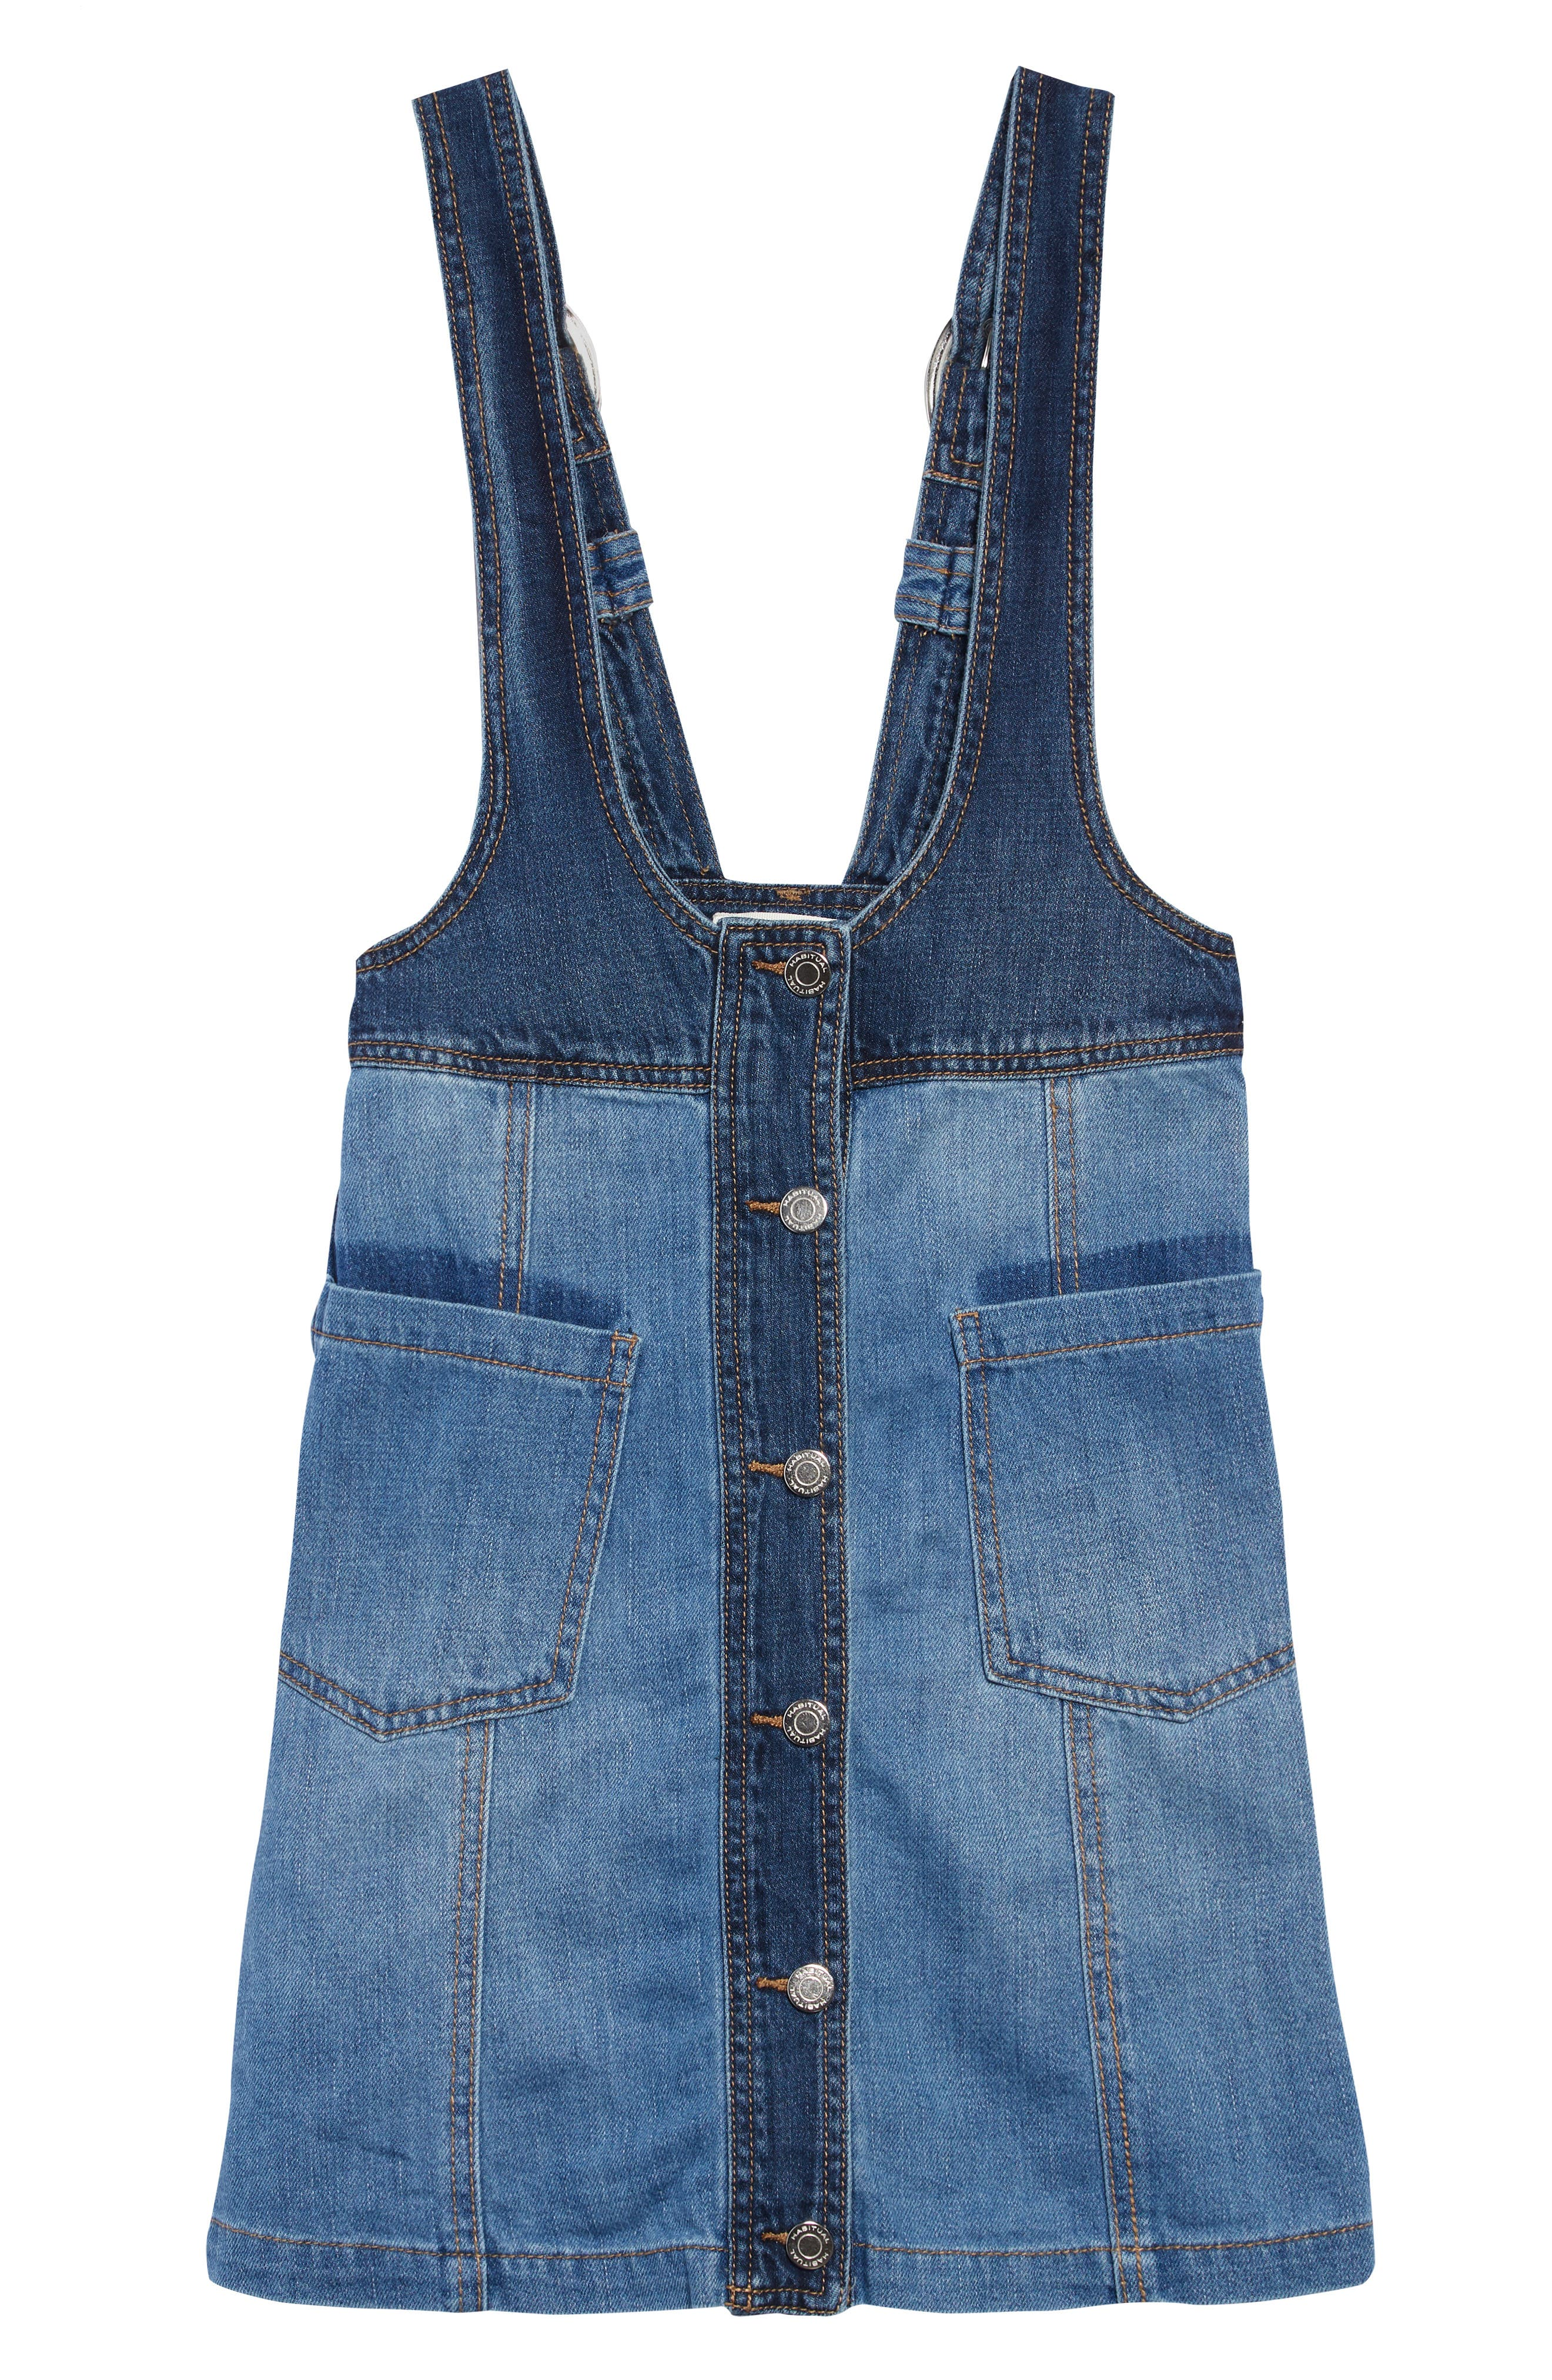 Girls Habitual Hester TwoTone Denim Pinafore Dress Size 14  Blue